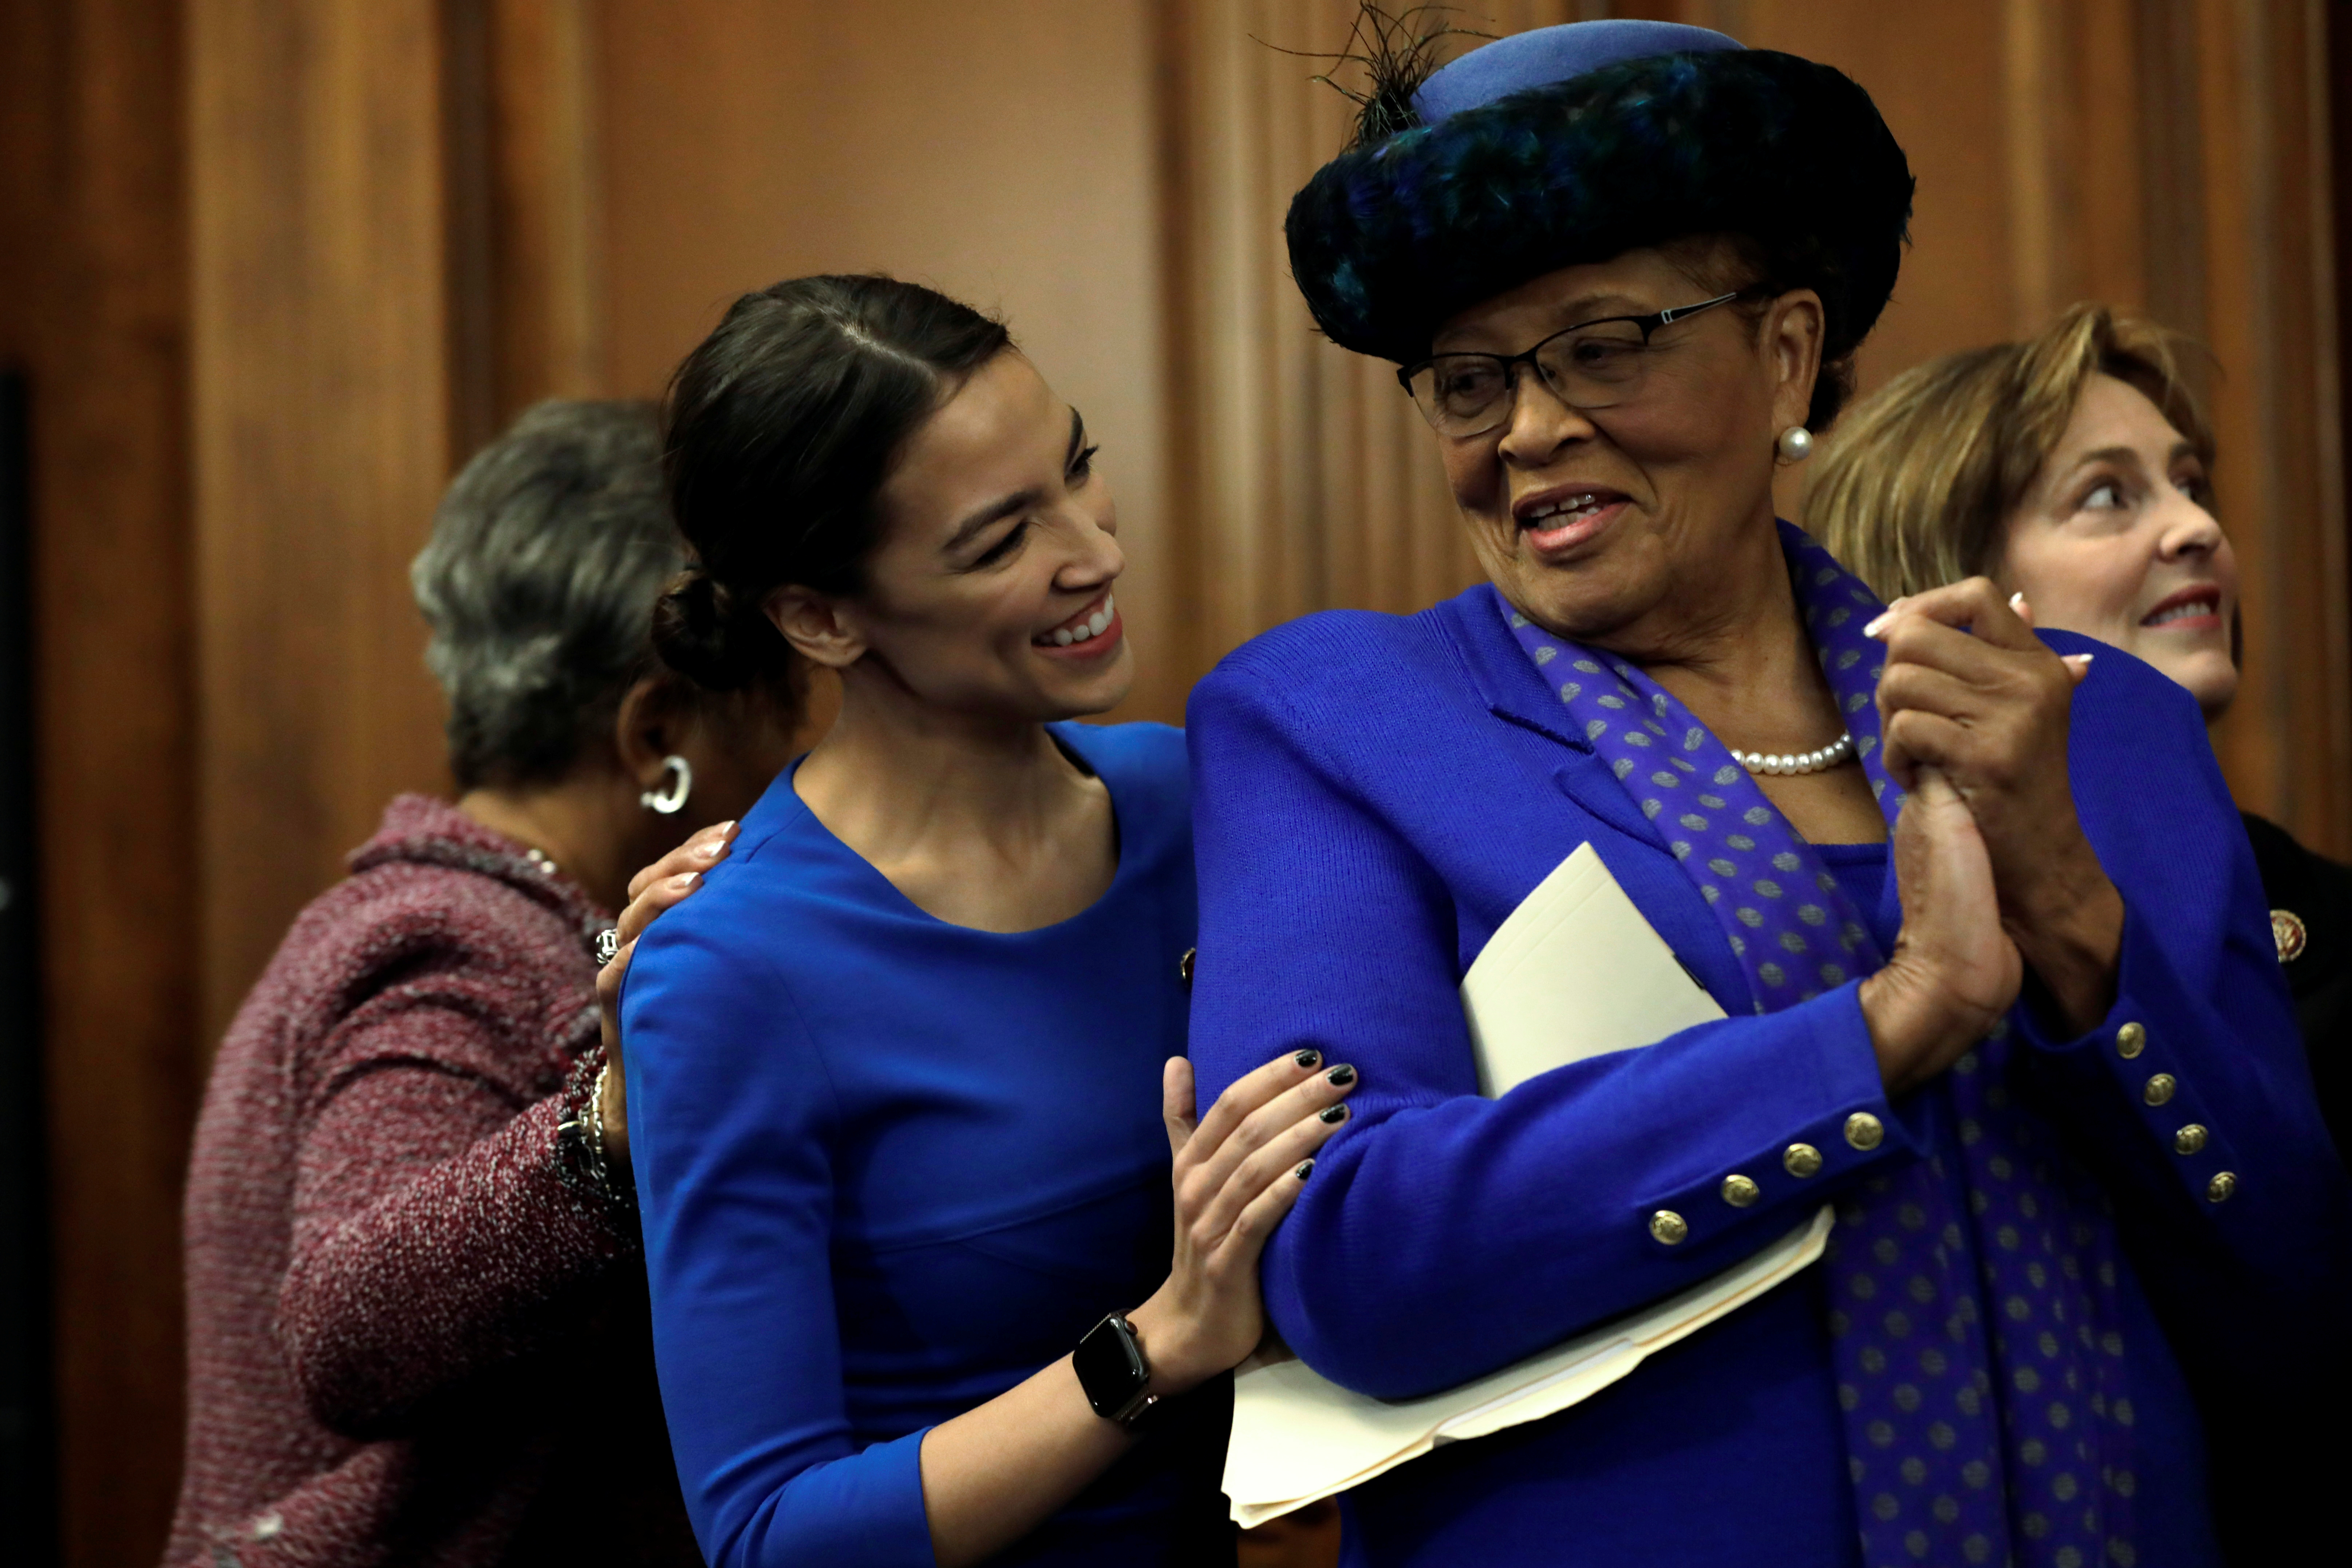 Reps. Alexandria Ocasio Cortez and Rep. Alma Adams react at House Democrats news conferenceon Capitol Hill in Washington